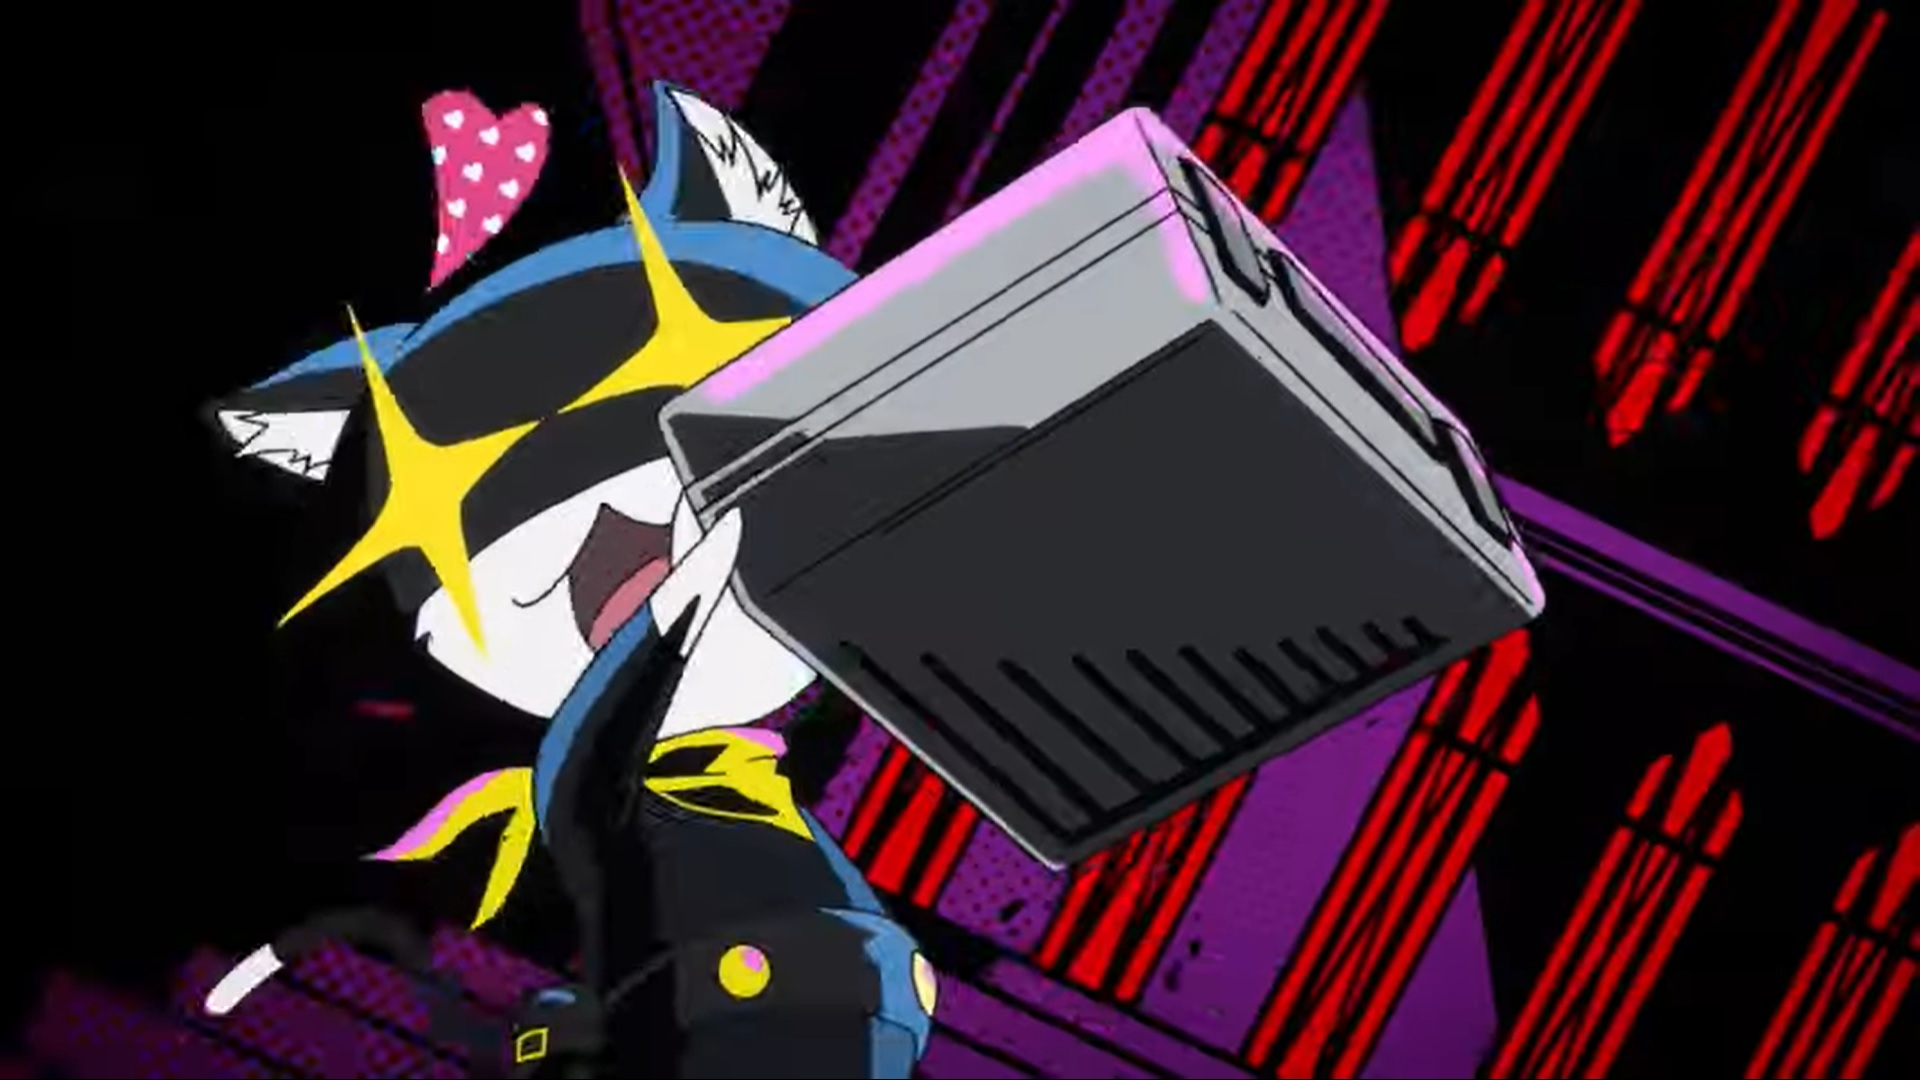 In Persona 5 Royal Morgana Came For Something More Precious Than